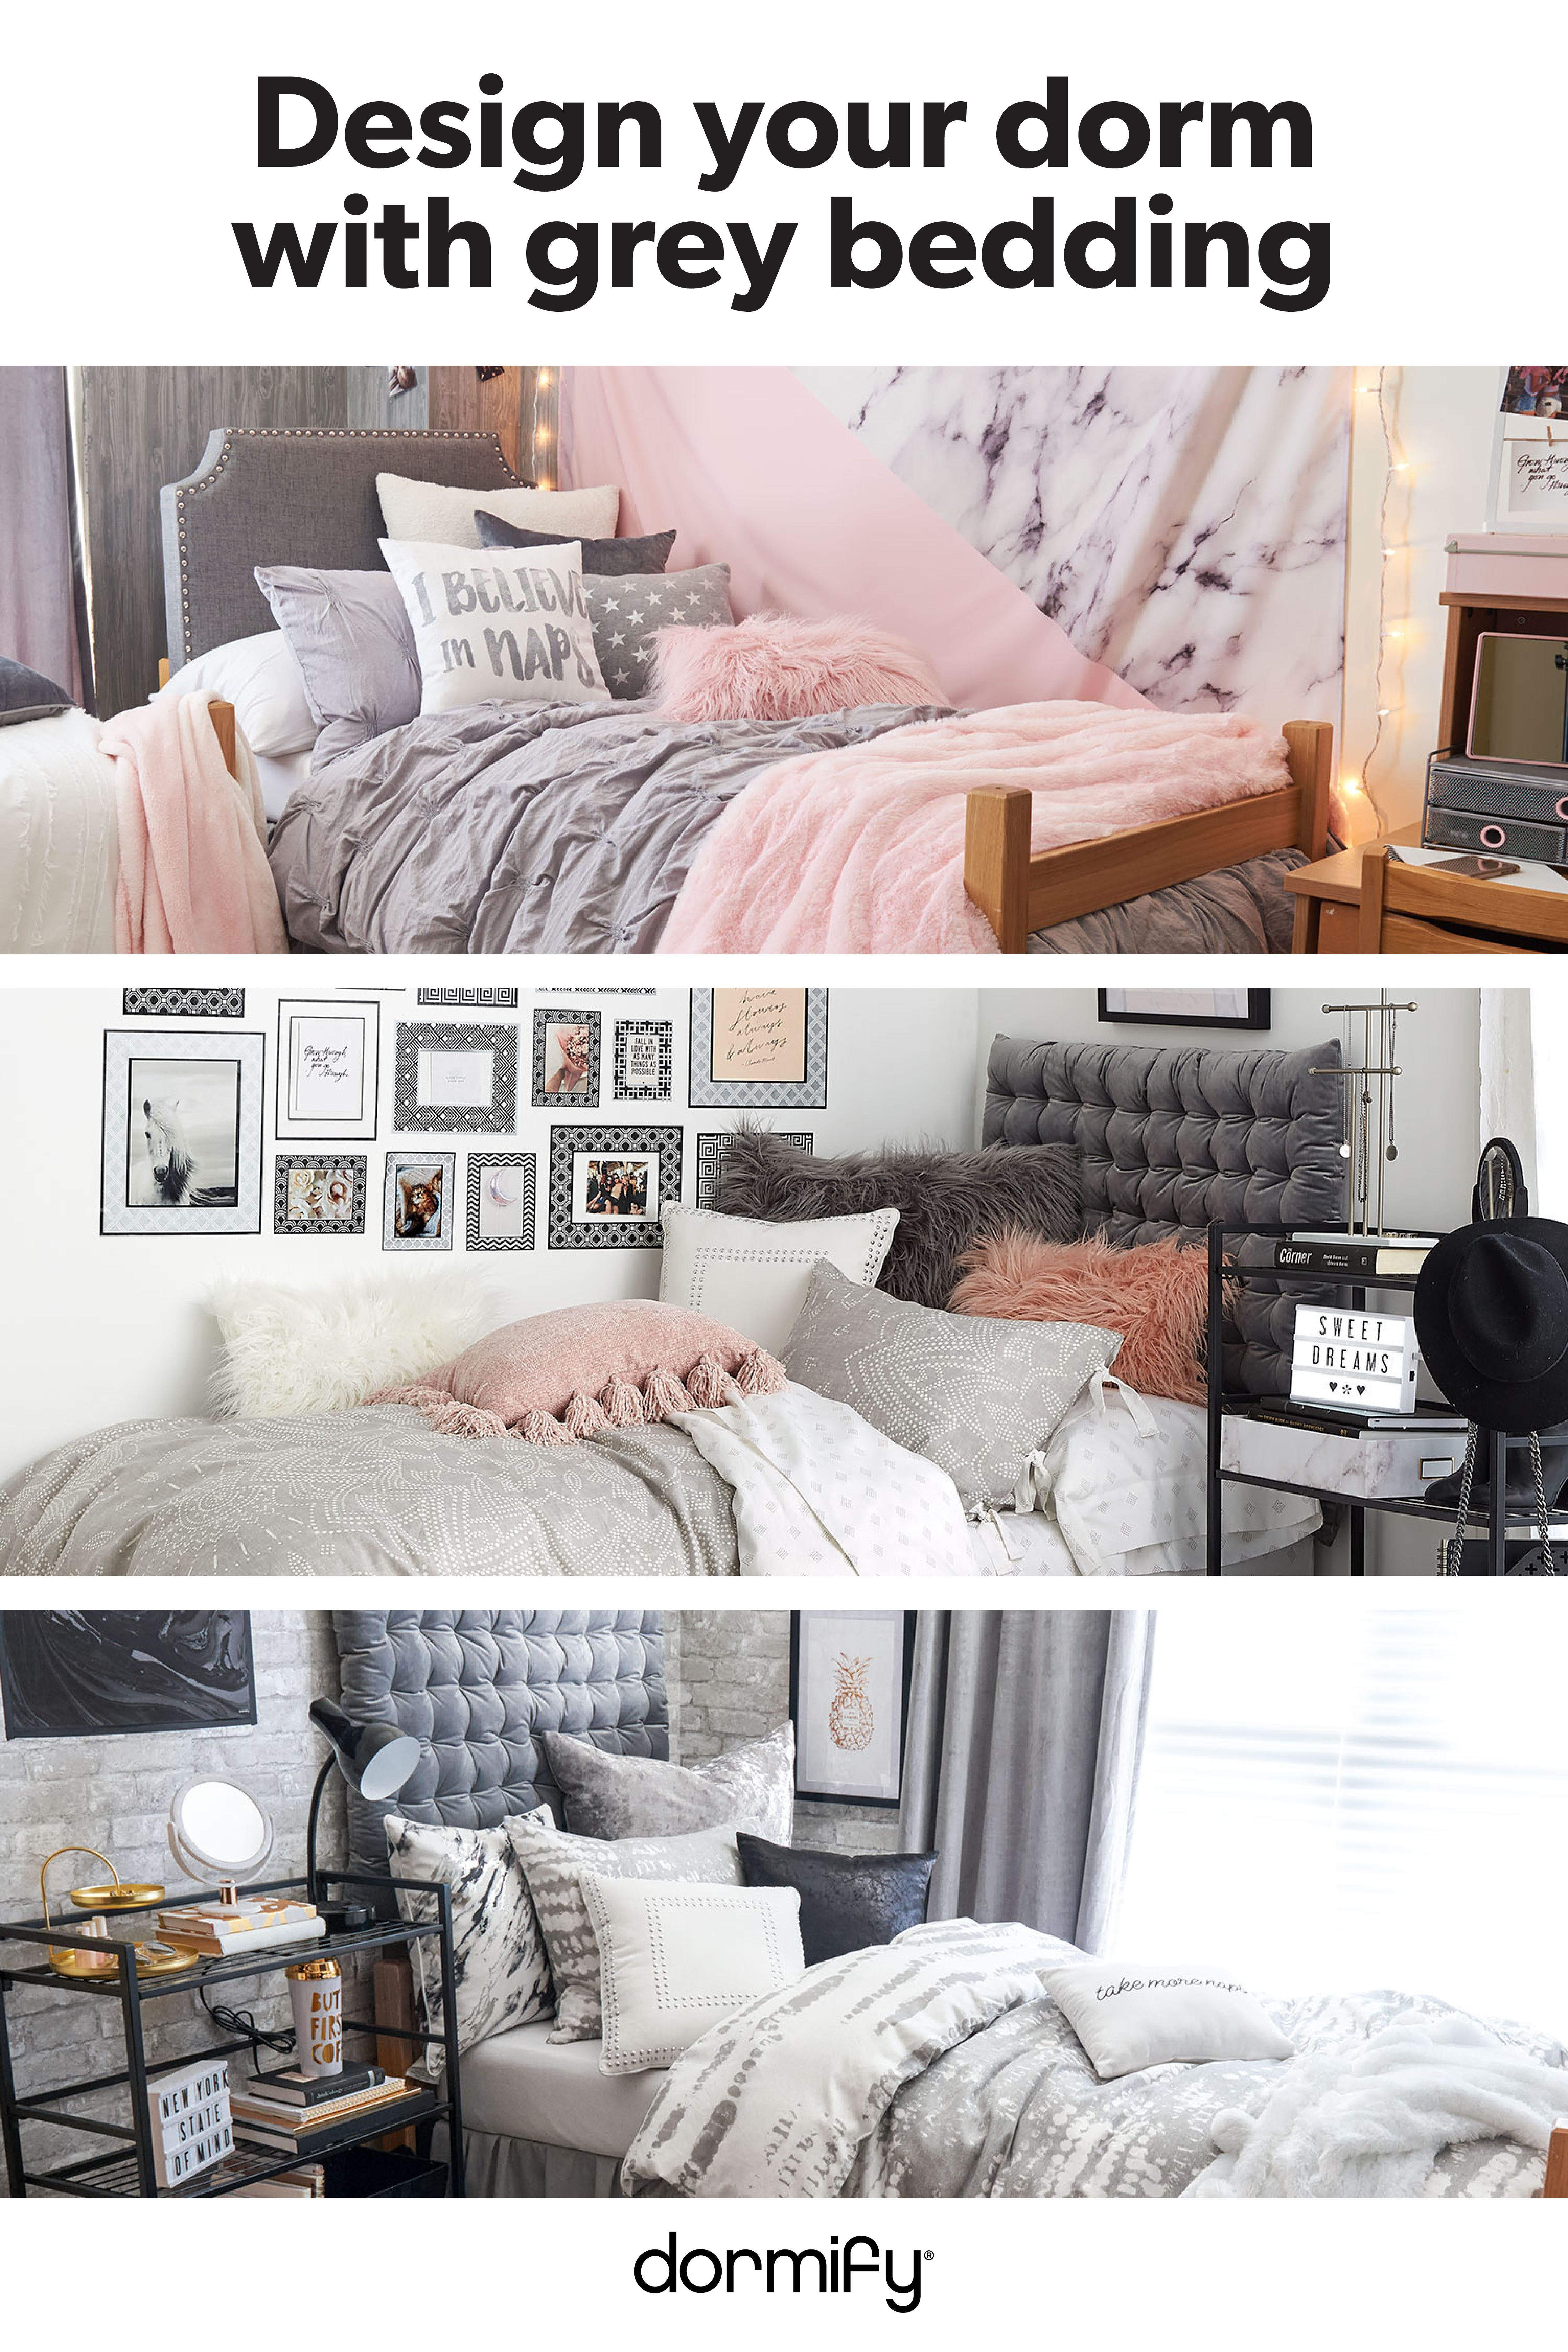 Dorm Room Furniture: Styling Your Dorm With Grey Bedding? Check Out Our